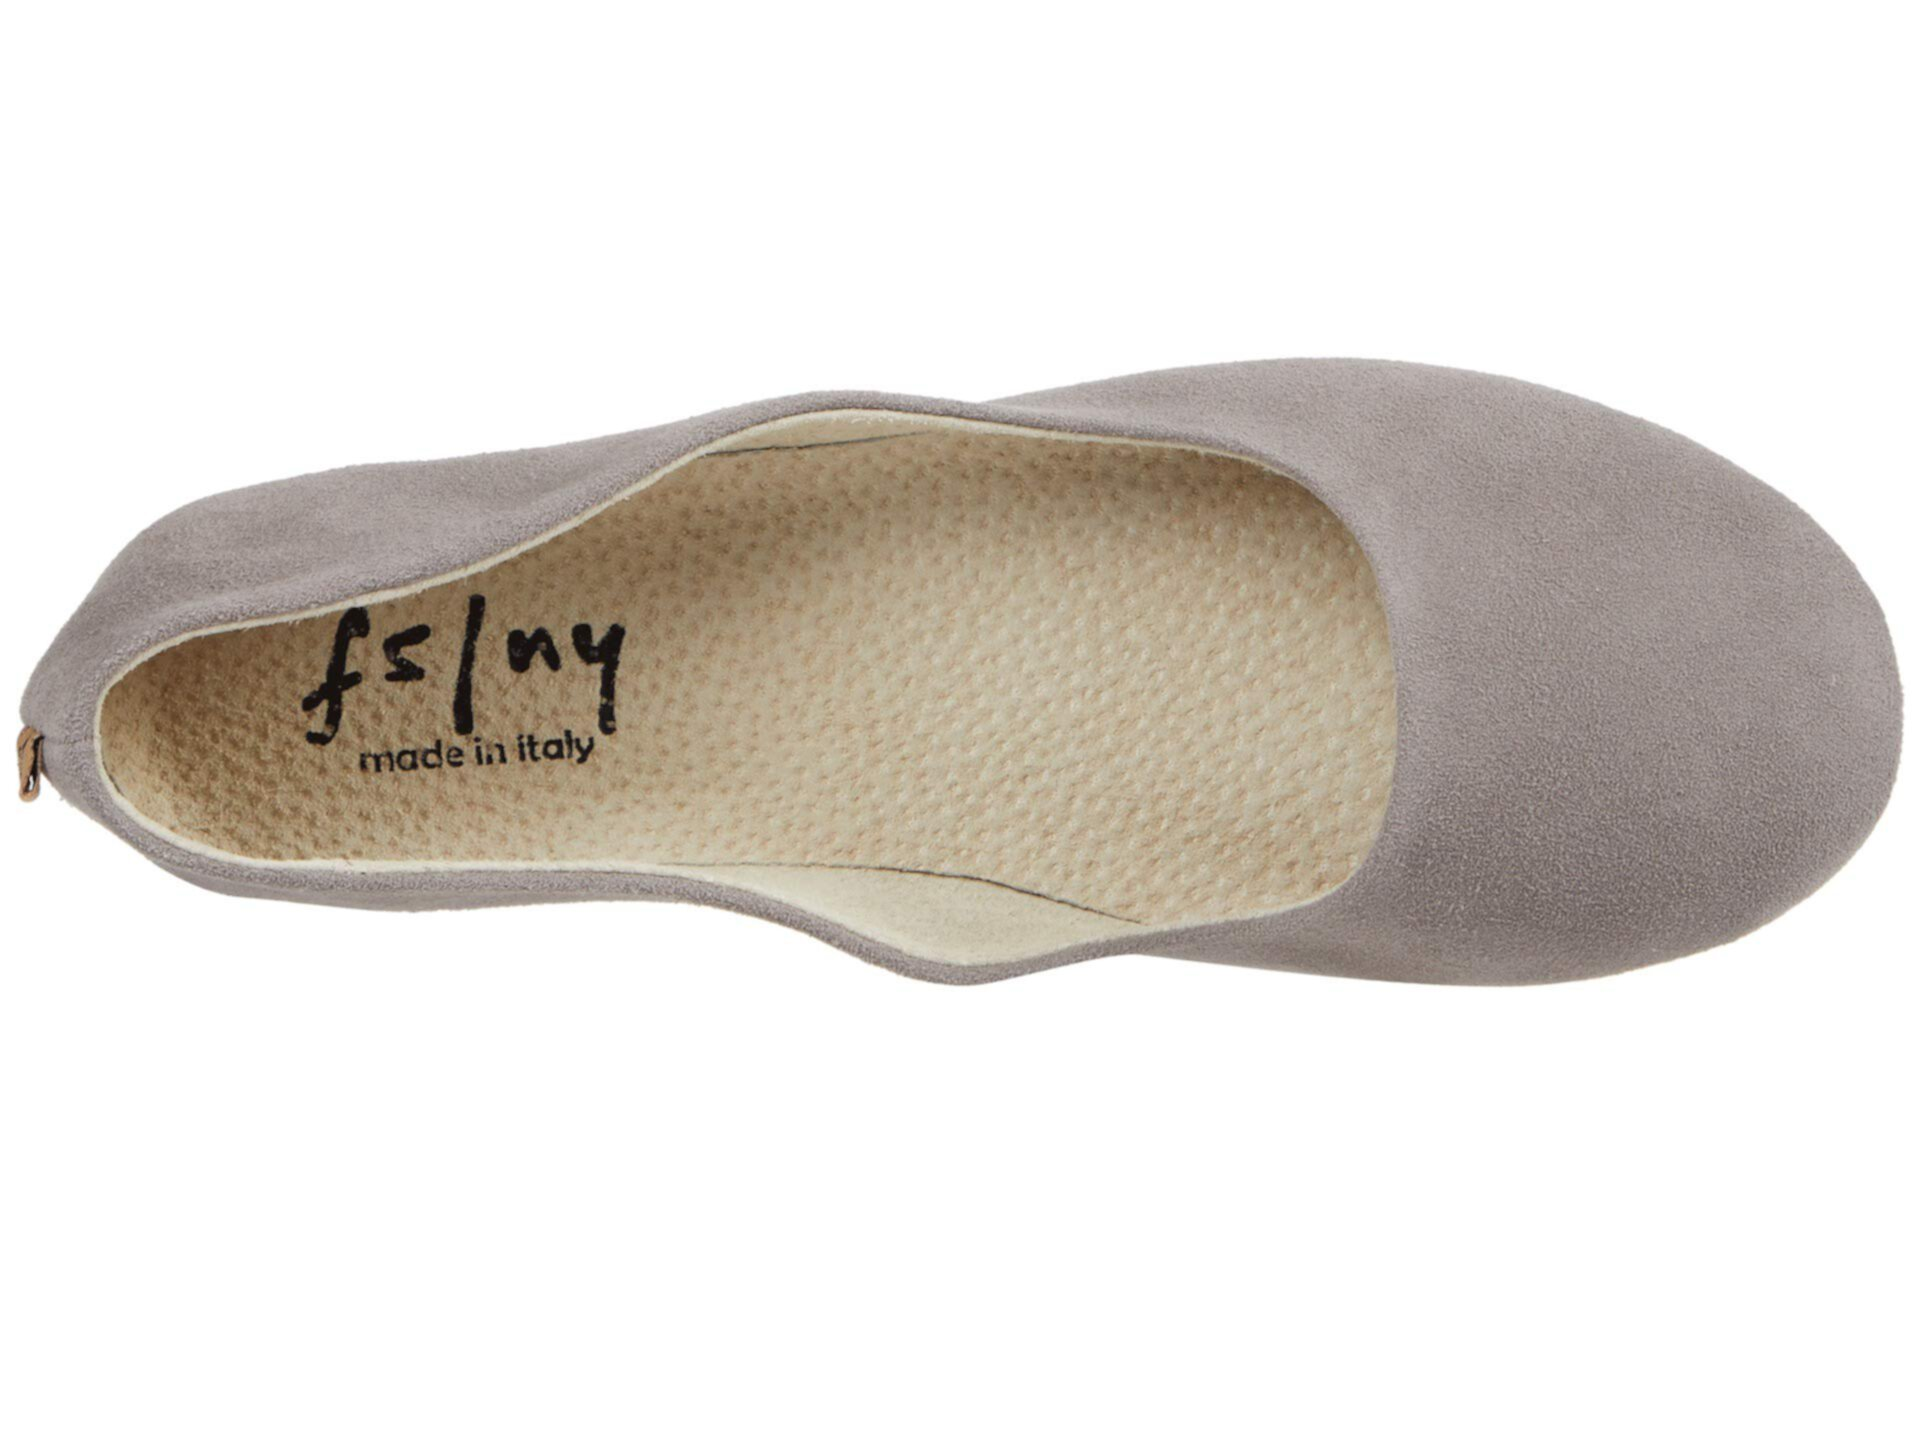 Sloop Flat French Sole